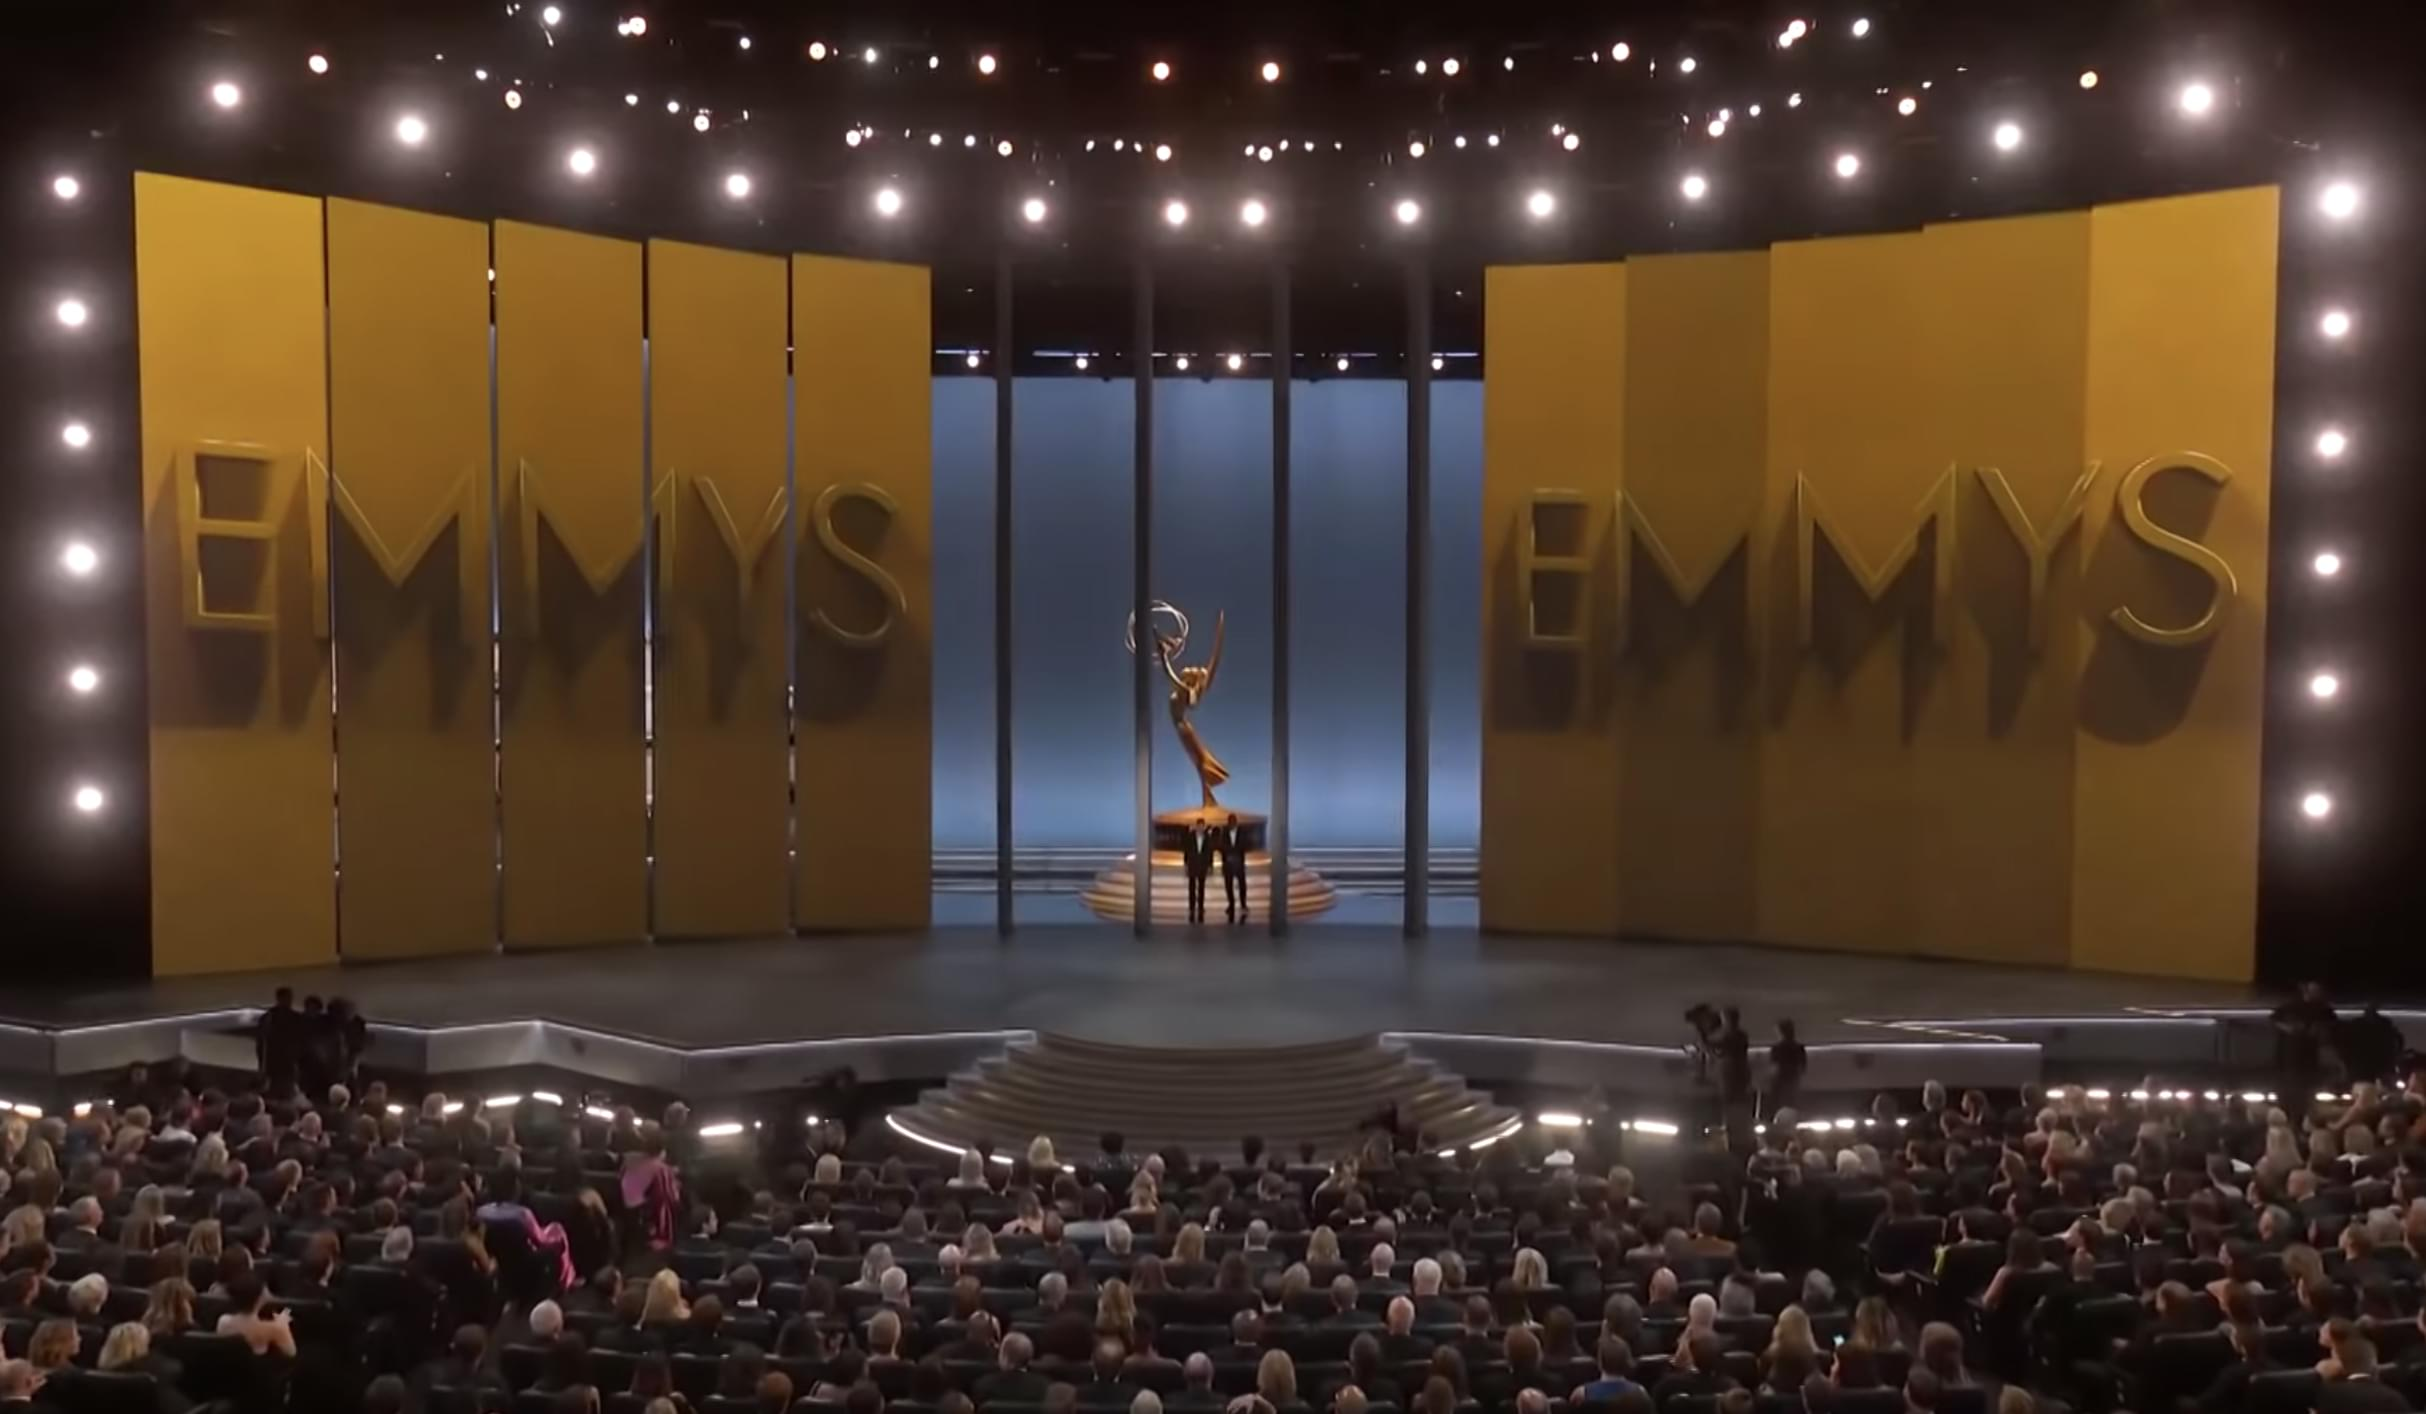 Will the Emmy's go without a host this year?